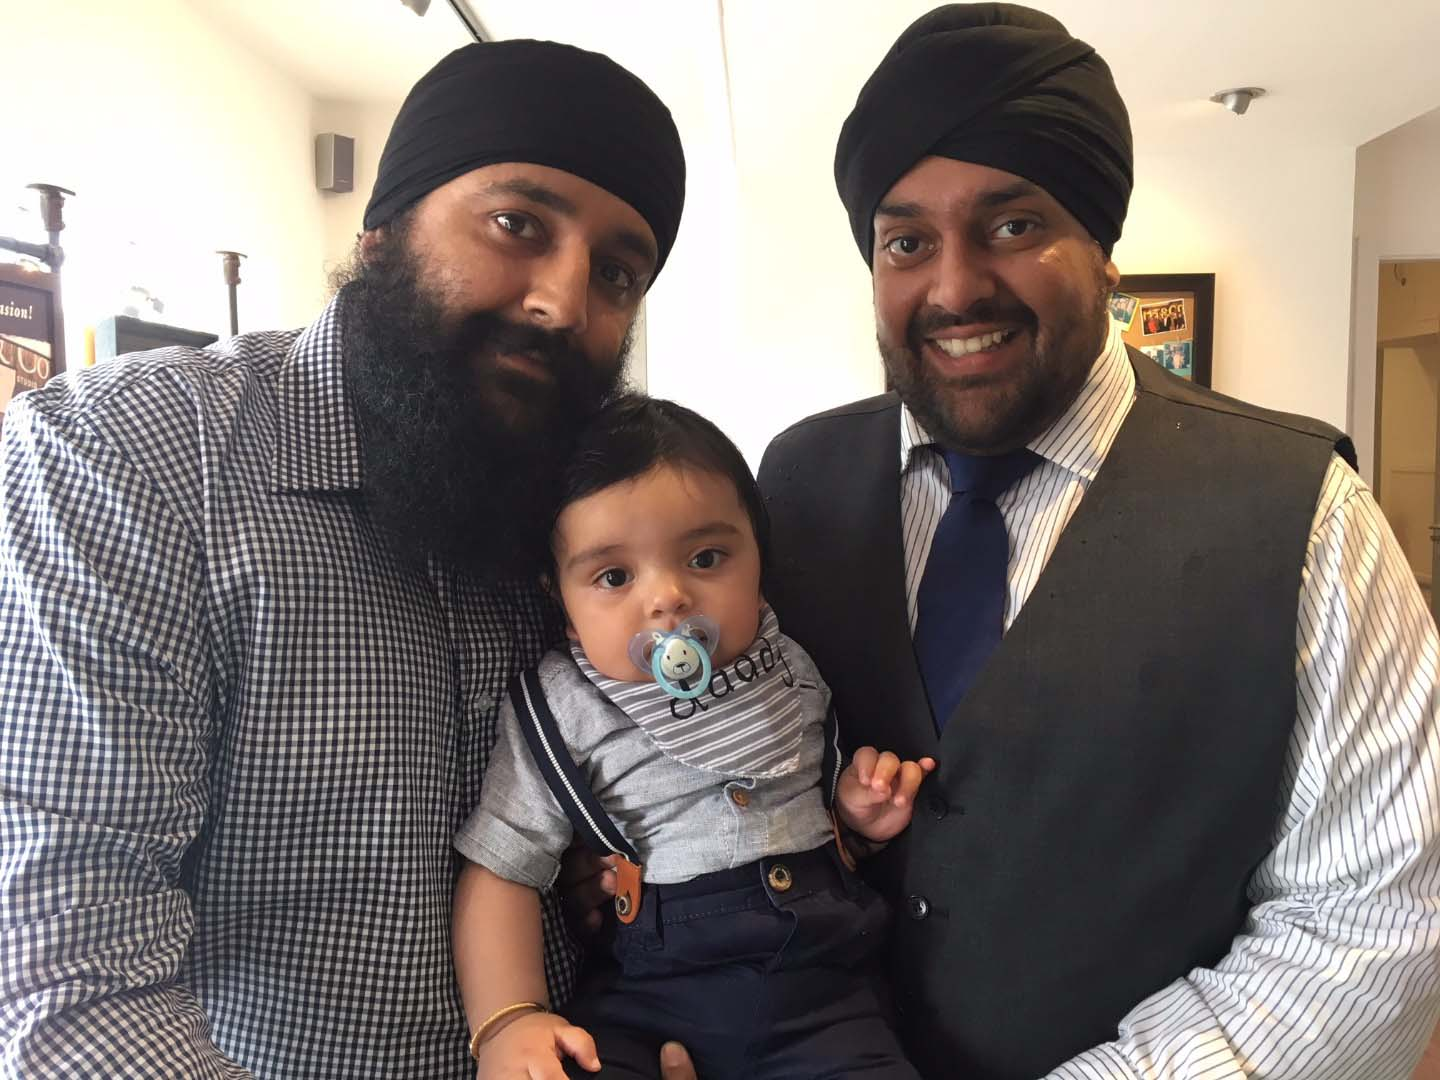 Gurpeet Singh (left) and his son Jorawal with Manpreet Singh (right)